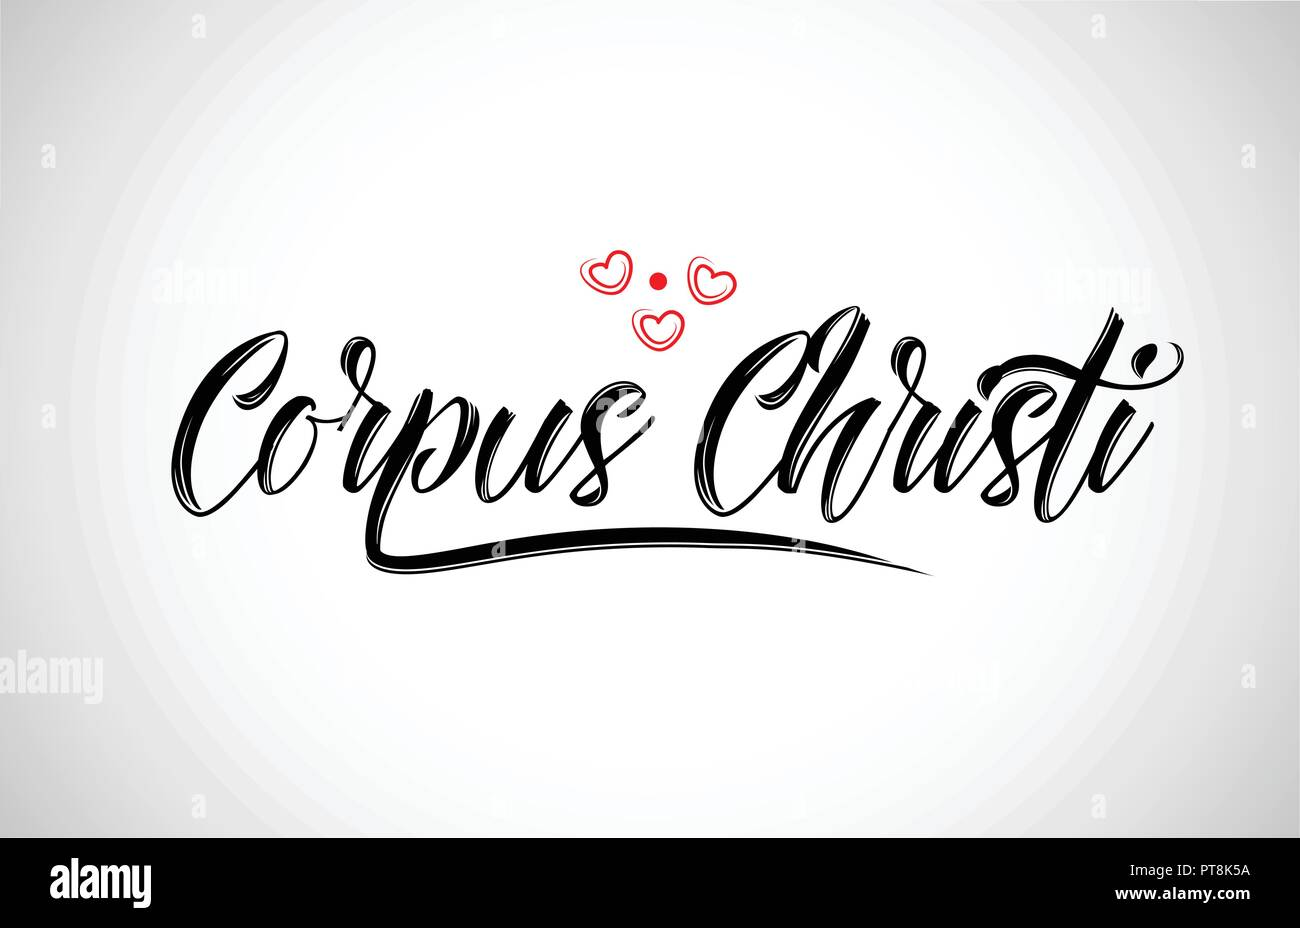 corpus christi  city text design with red heart typographic icon design suitable for touristic promotion Stock Vector